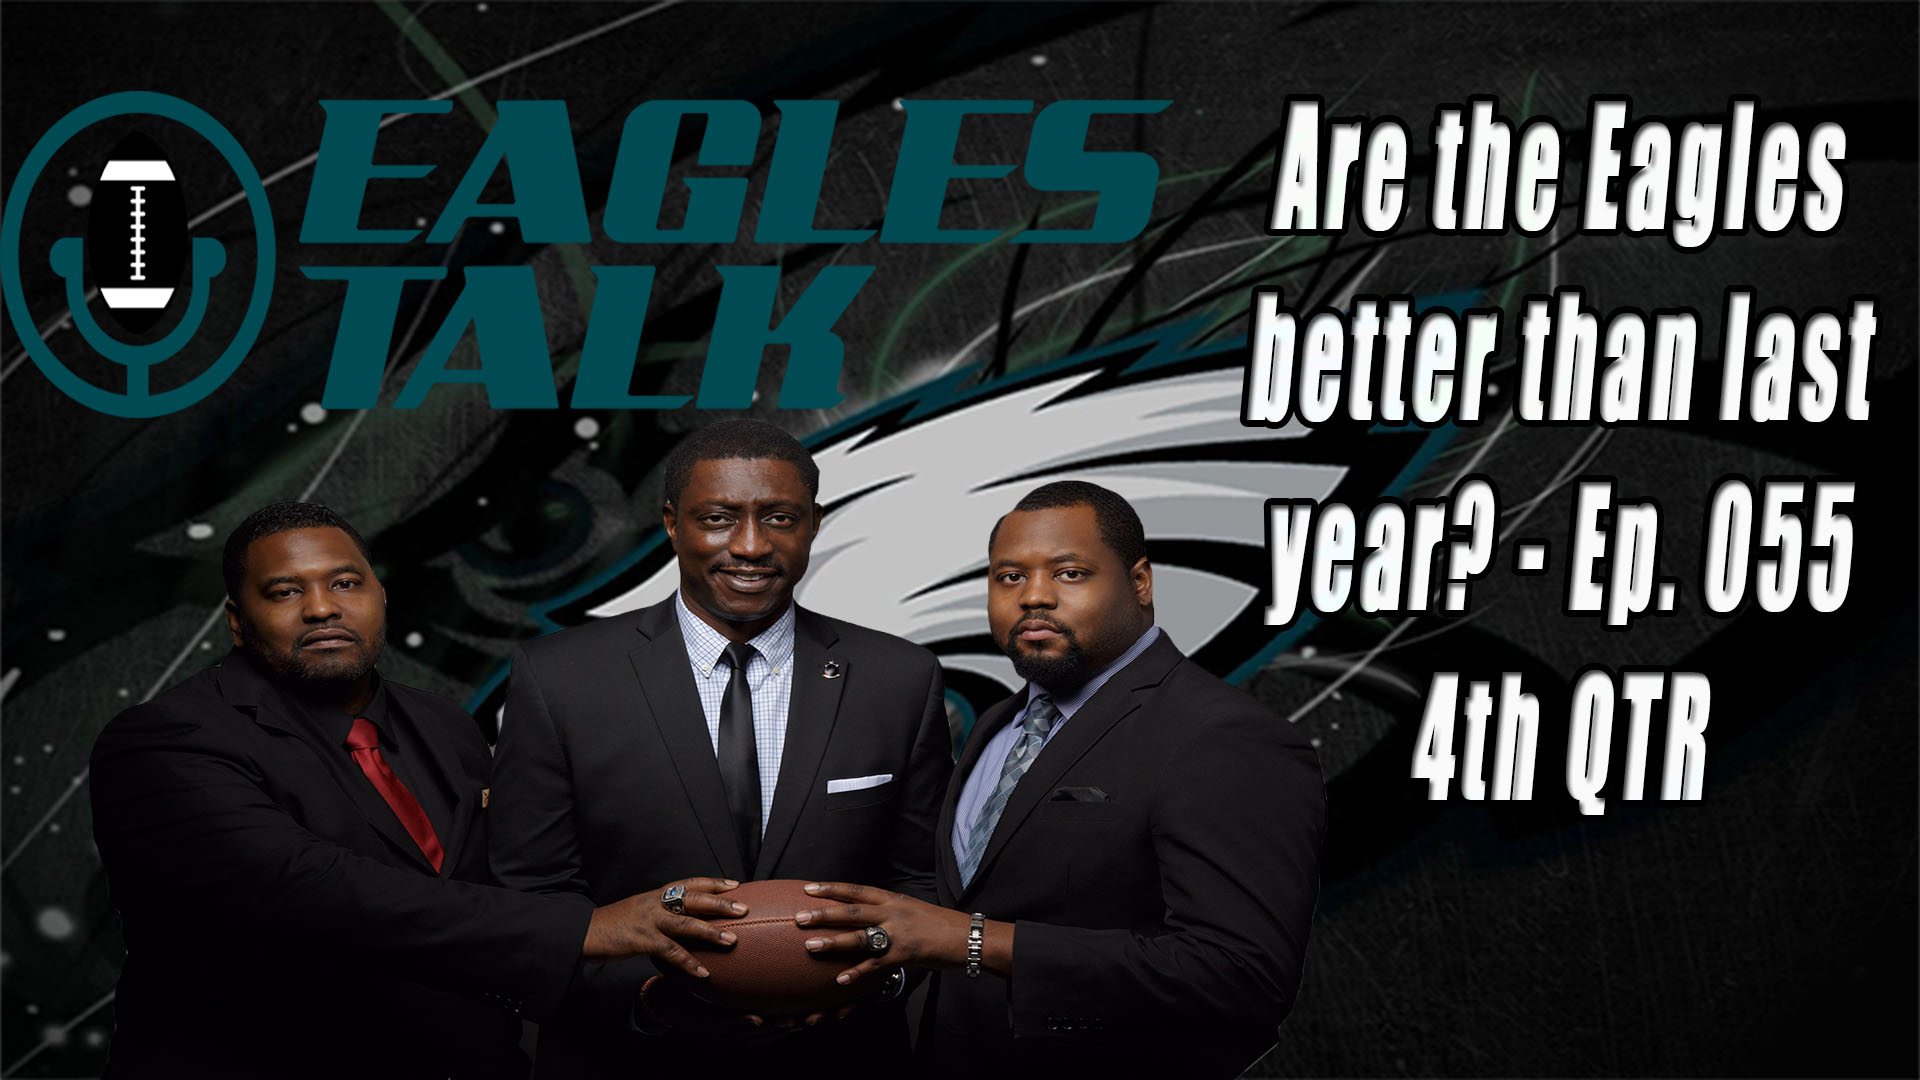 Eagles Talk Ep058: Are the Eagles better than last year? (4th QTR)